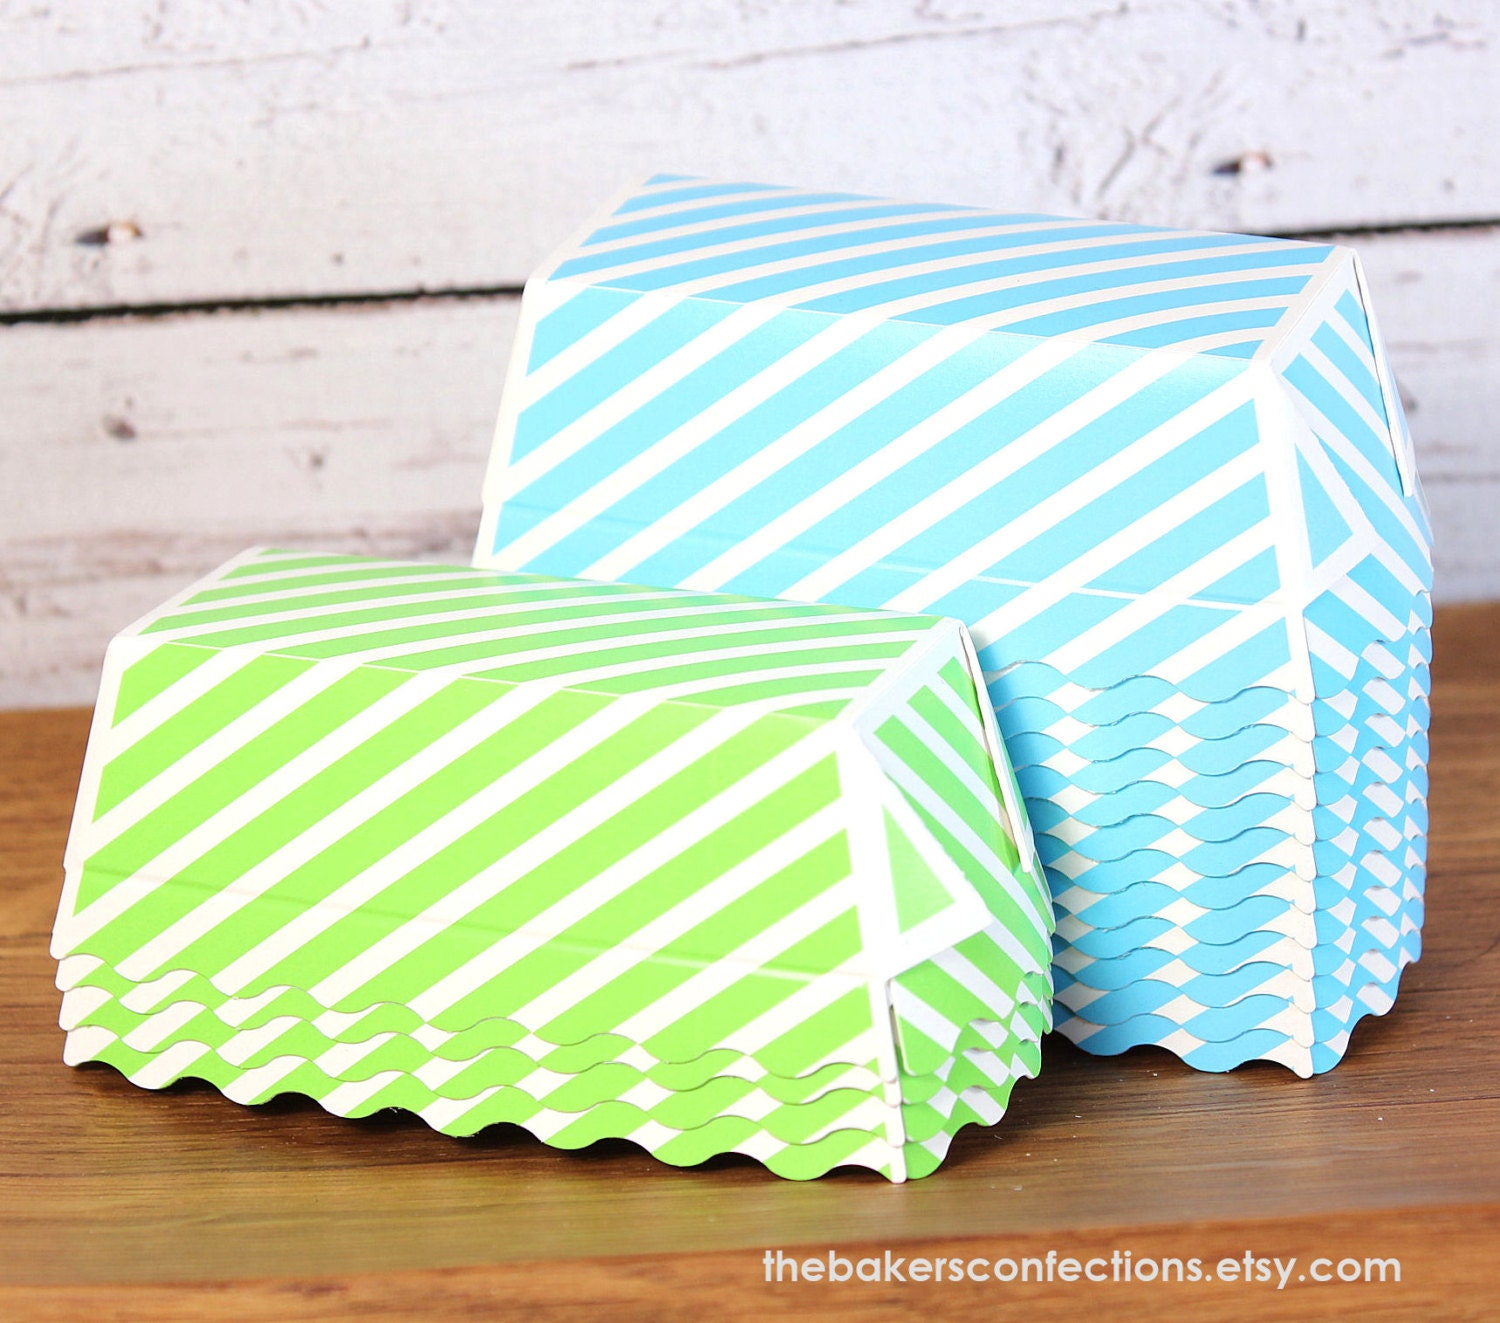 Mini Paper Loaf Baking Pans In Blue And Lime Stripe 12